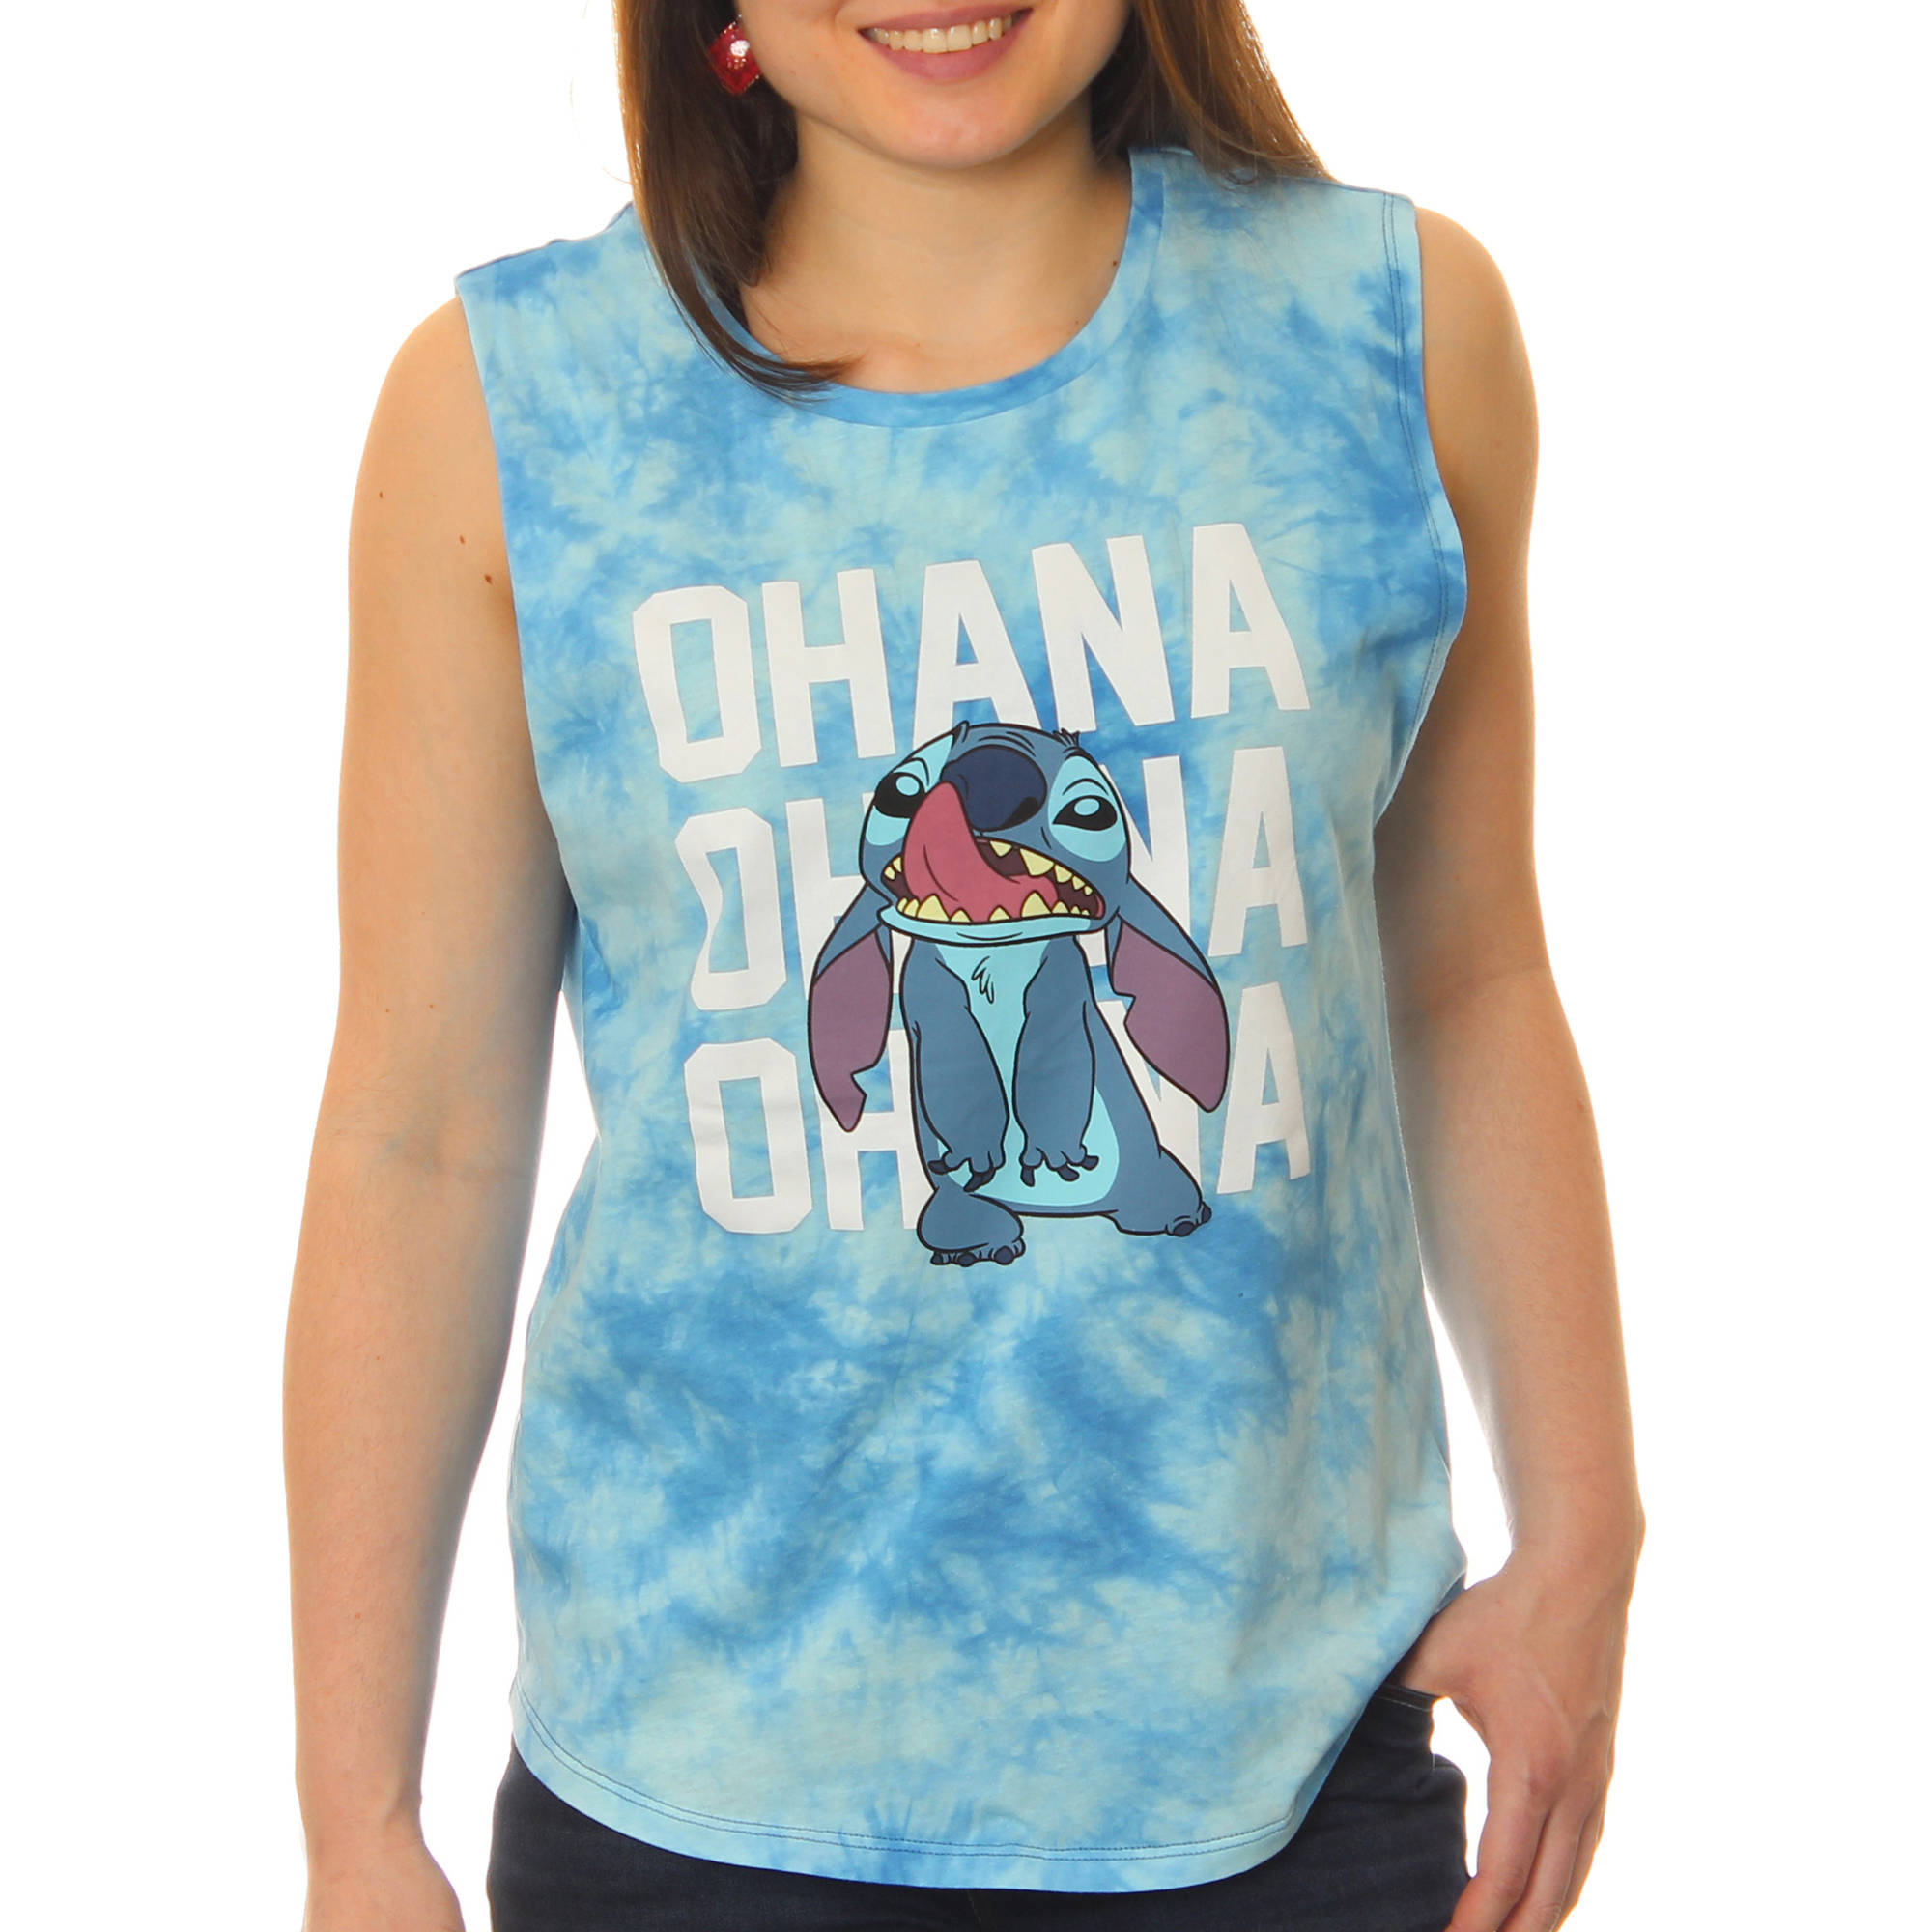 Lilo and Stitch Juniors' Licking Nose 'Ohana' Muscle Graphic Tank Top With Tie Dye Coloring by